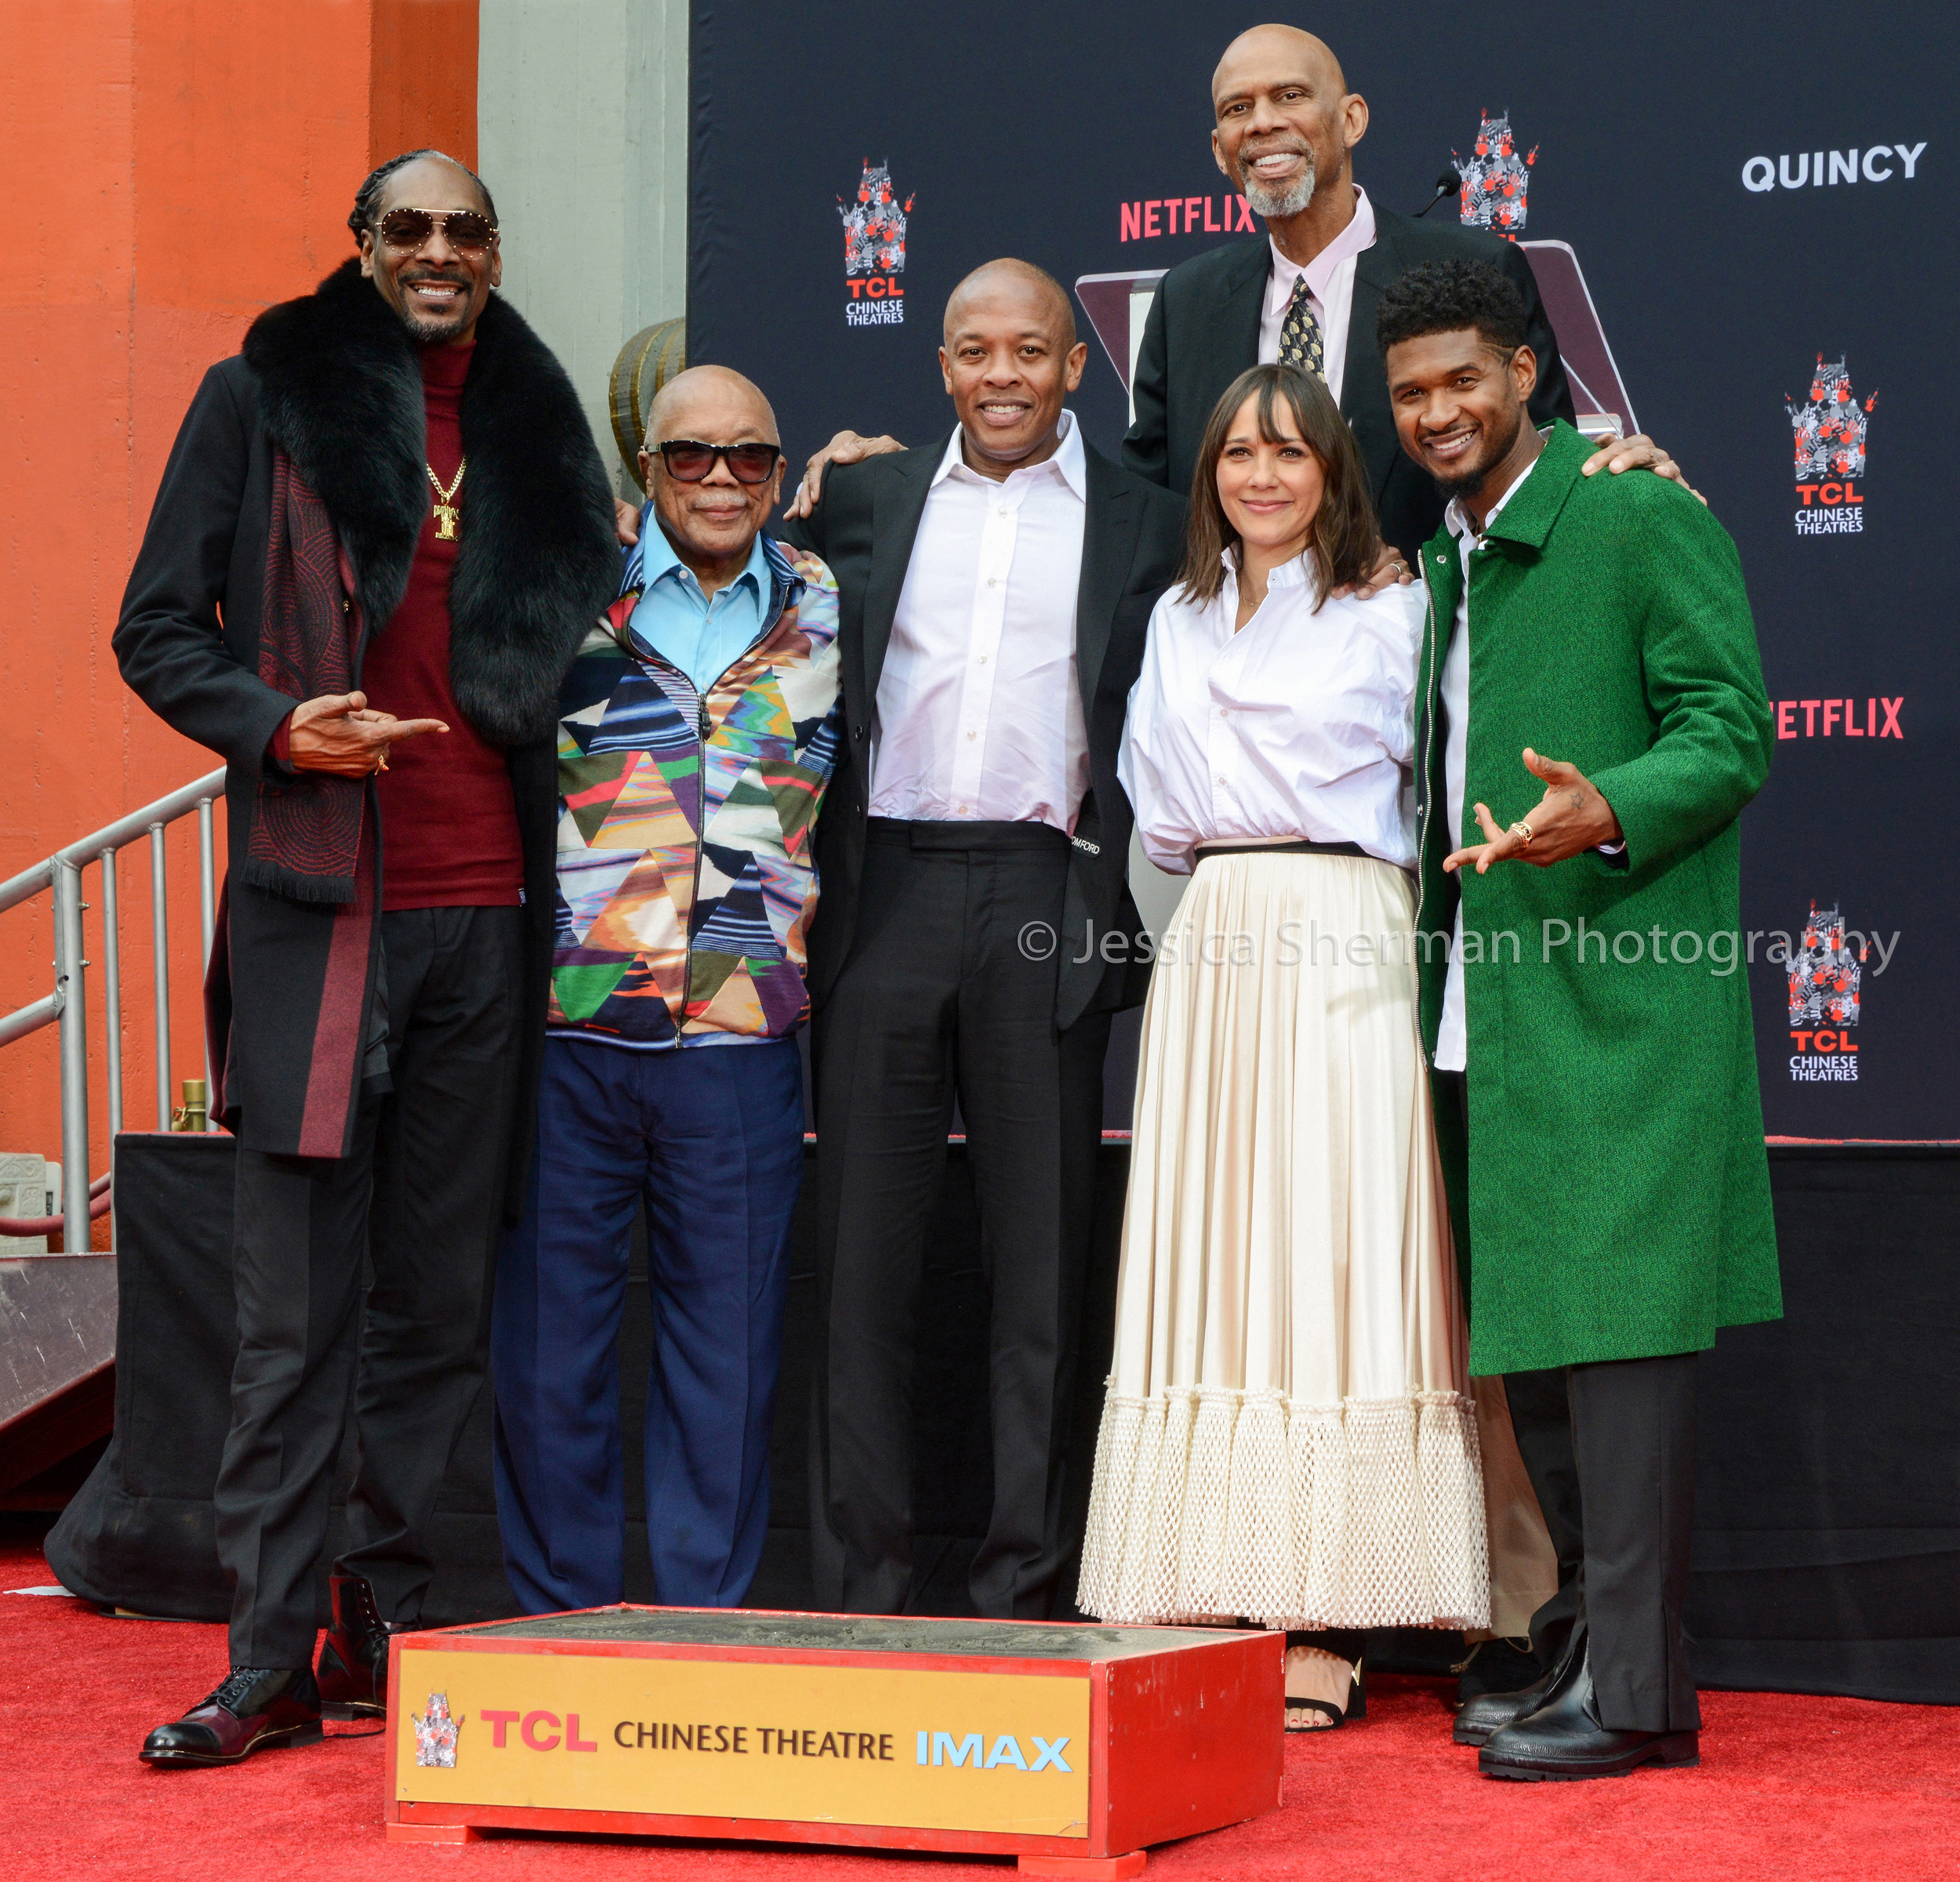 Quincy-Jones-Jessica-Sherman-1342.jpg